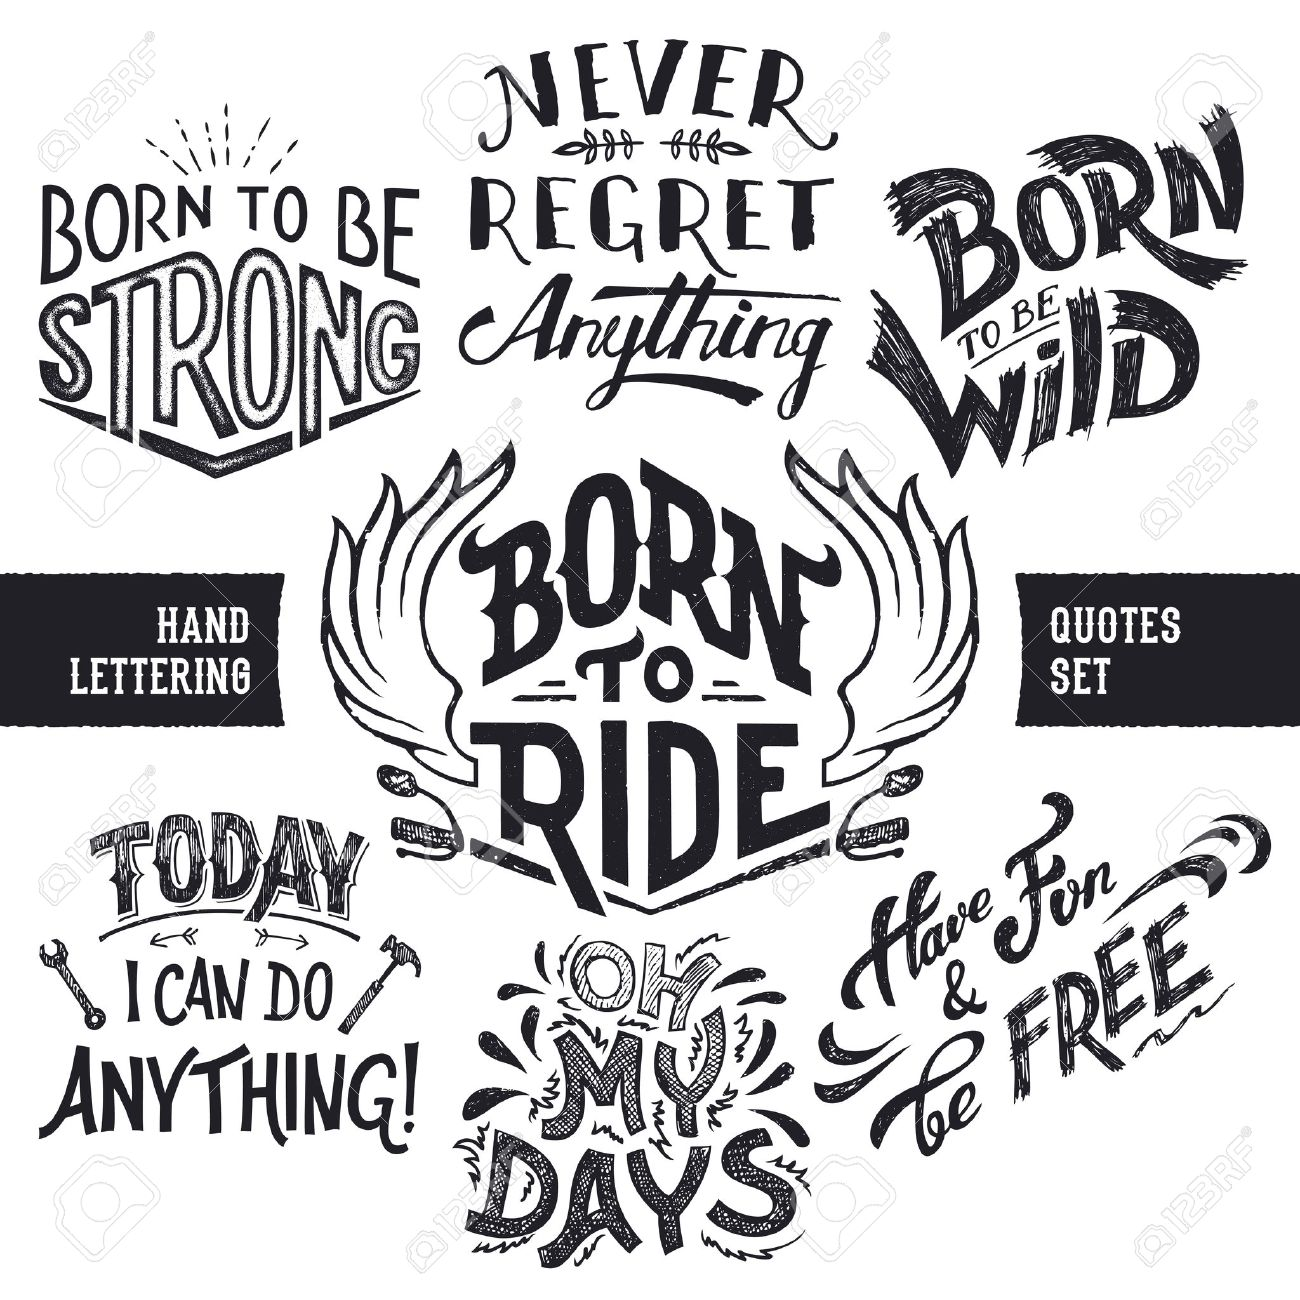 Hand Lettering Trendy Motivational And Funny Quotes Set Isolated